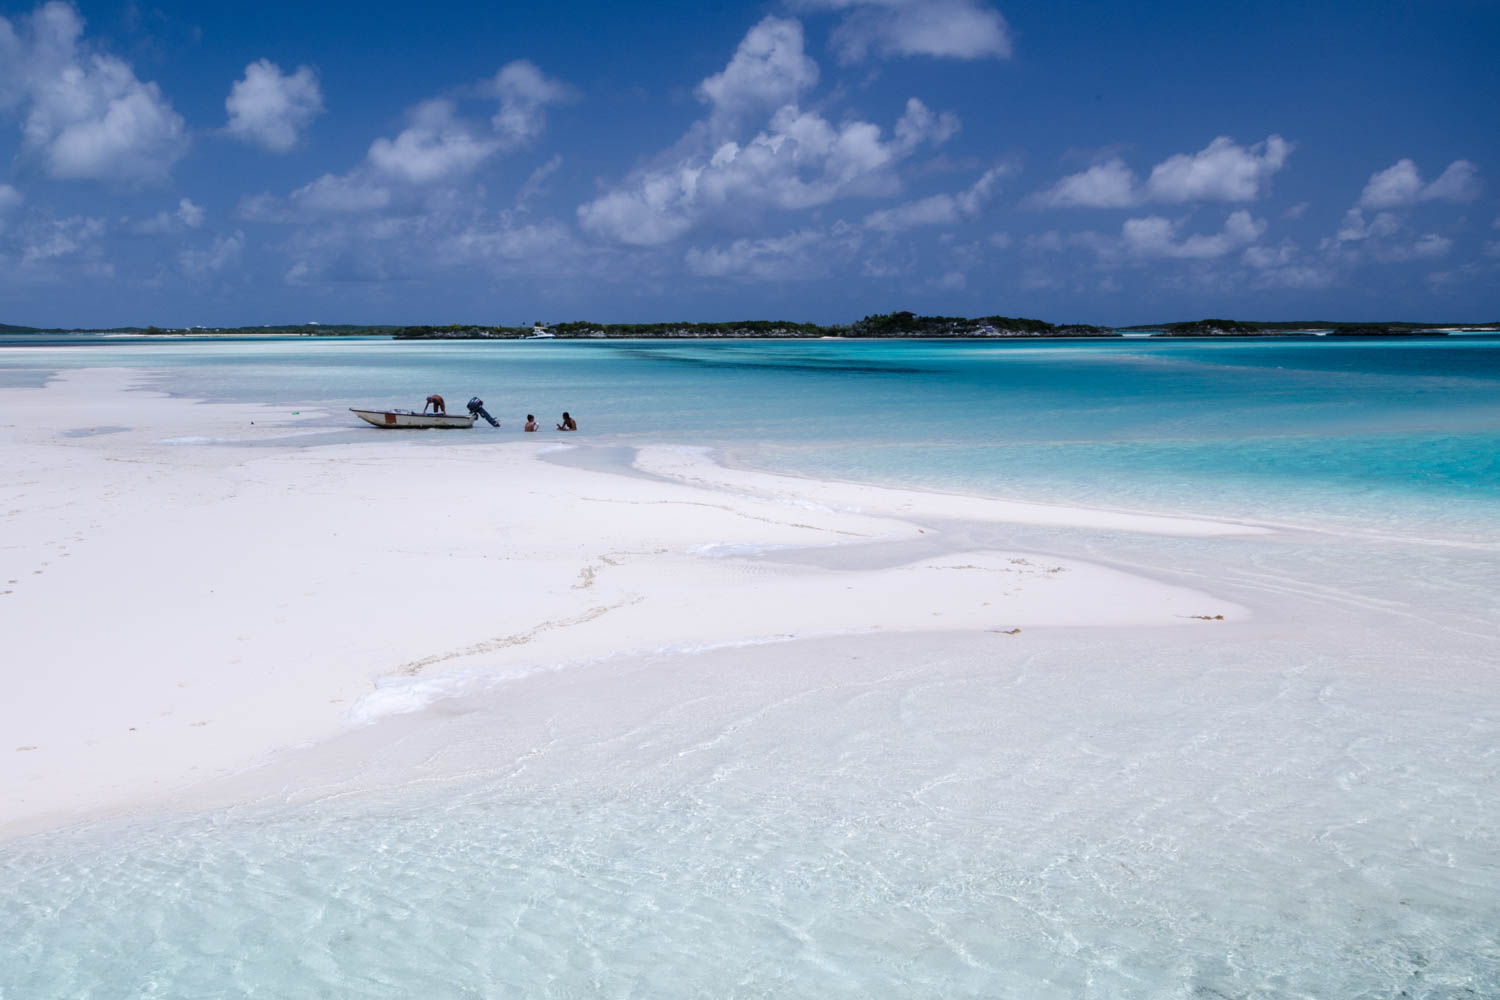 Sand bars like this appear at low tide and reveal a hidden oasis. On any nassau to Exuma day trip, you can take Exuma excursions from Nassau to the sand bars.